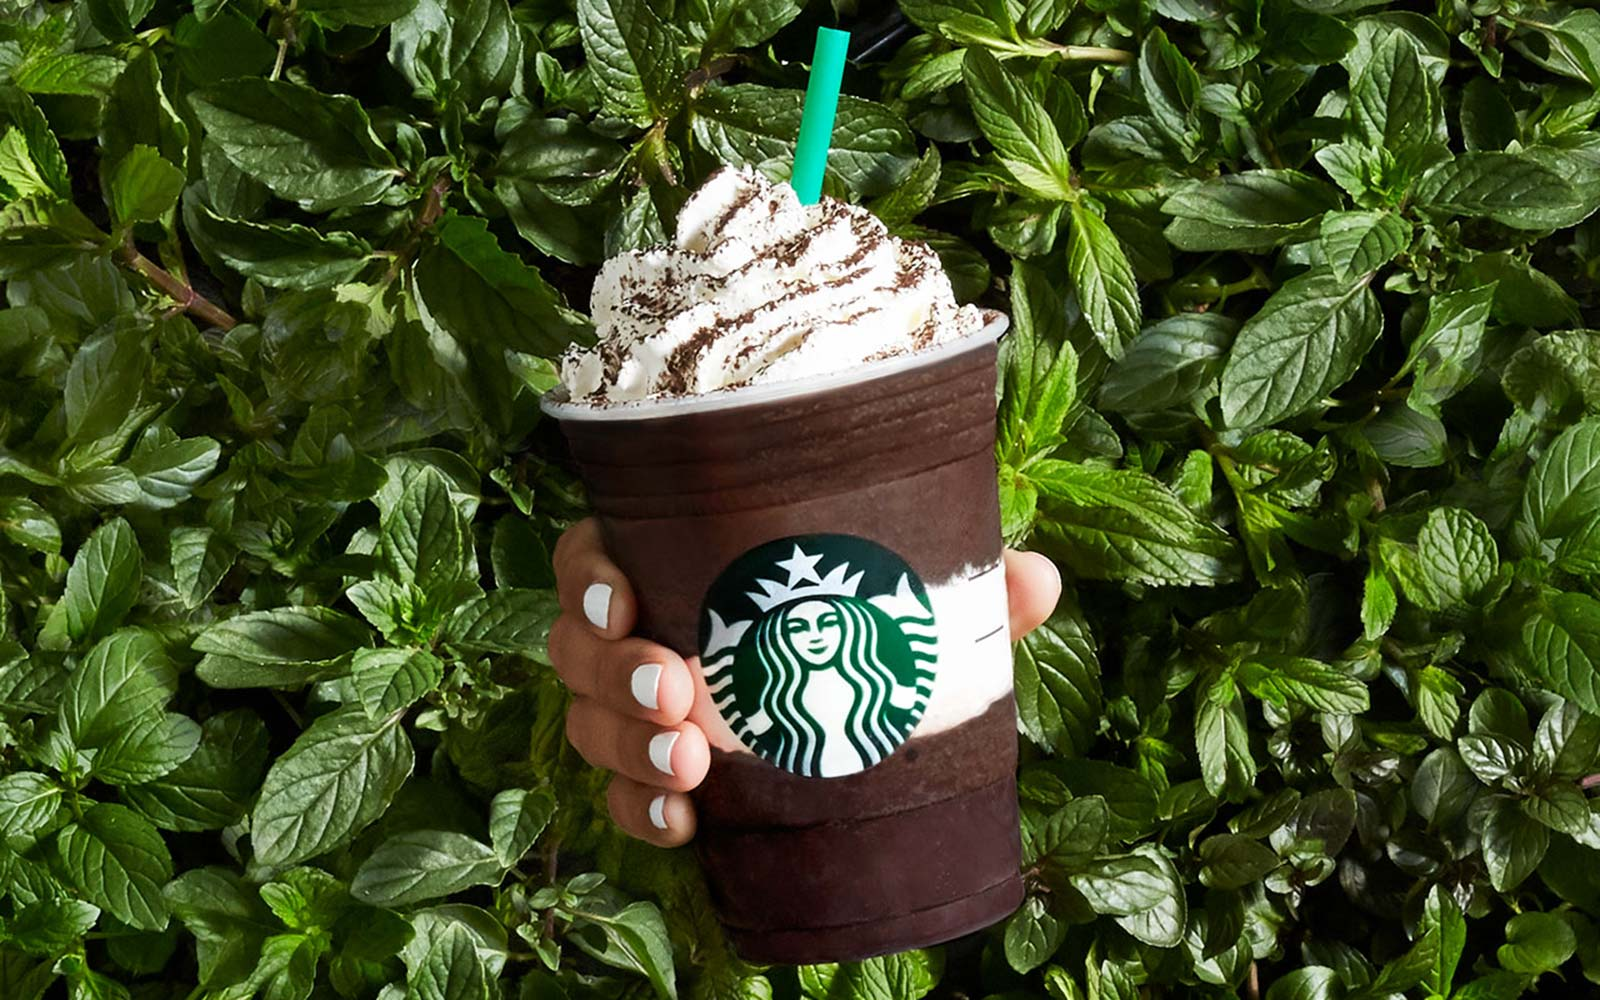 The new Starbucks Midnight Mocha tastes like a liquified Girl Scout cookie